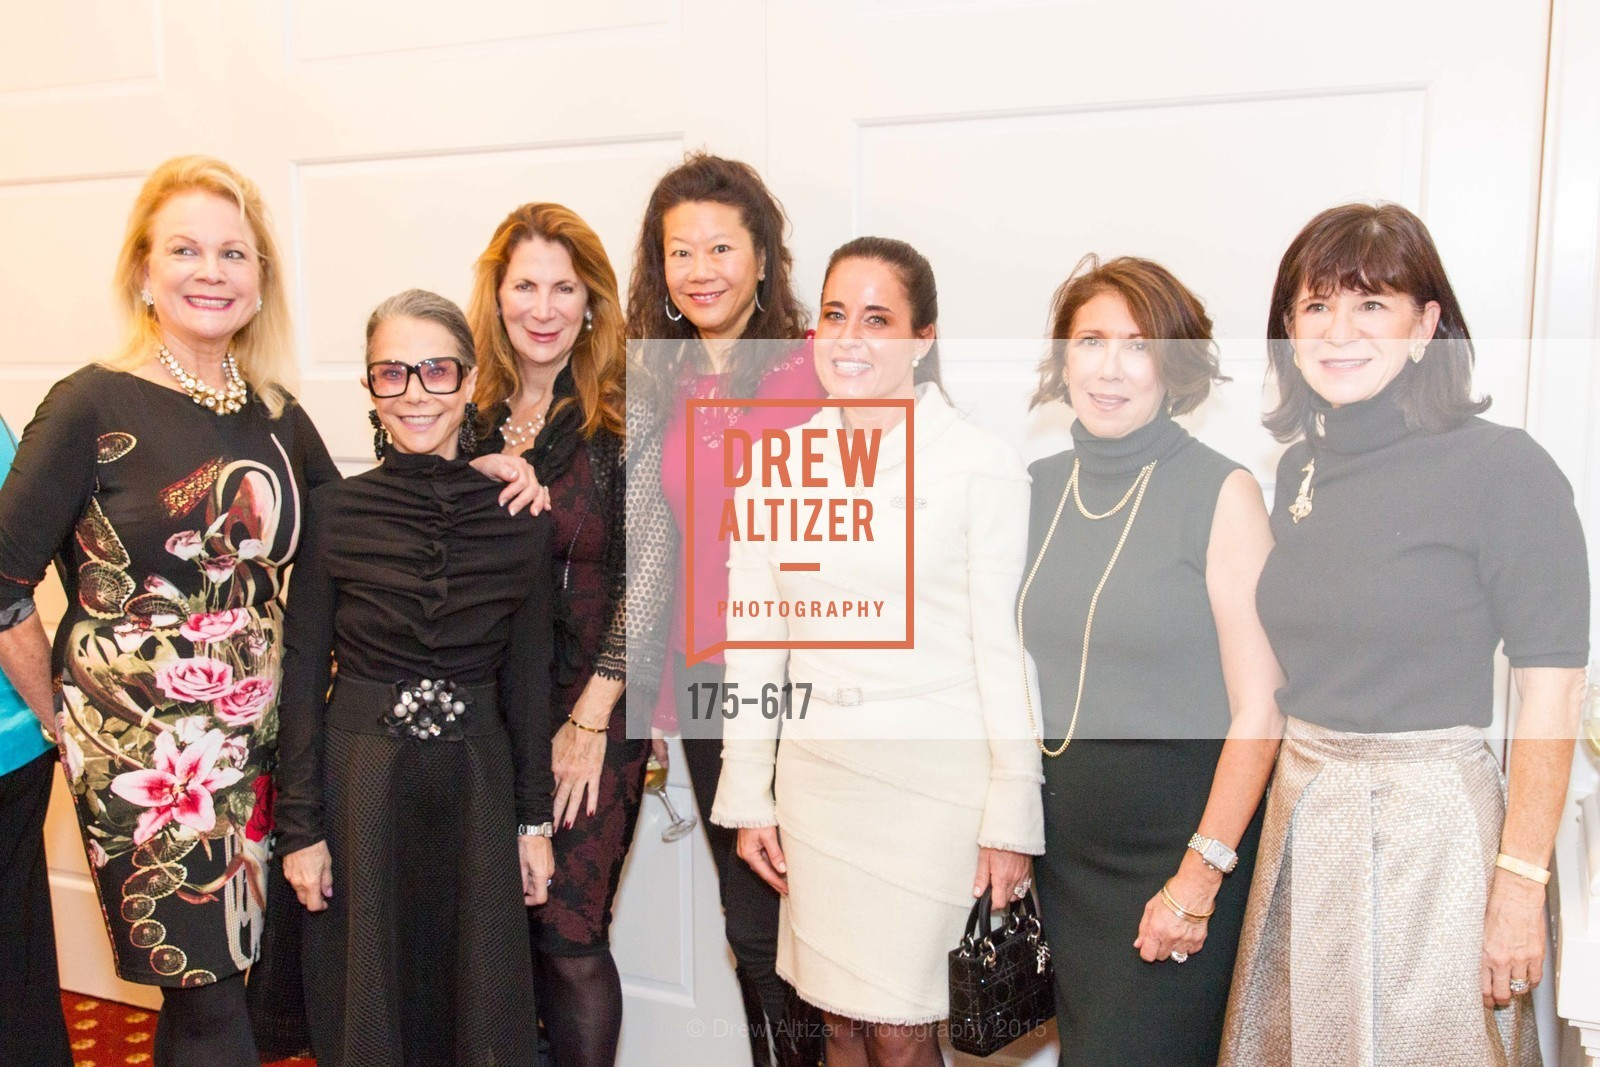 Claire Kostic, Julie Coplon, Patricia Ferrin Loucks, Michelle Helm, Natalia Urrutia, Cynthia Karasik, Pam McBain, Boy's & Girls' Towns of Italy Holiday Luncheon, The Olympic Club. 524 Post Street, December 3rd, 2015,Drew Altizer, Drew Altizer Photography, full-service event agency, private events, San Francisco photographer, photographer California